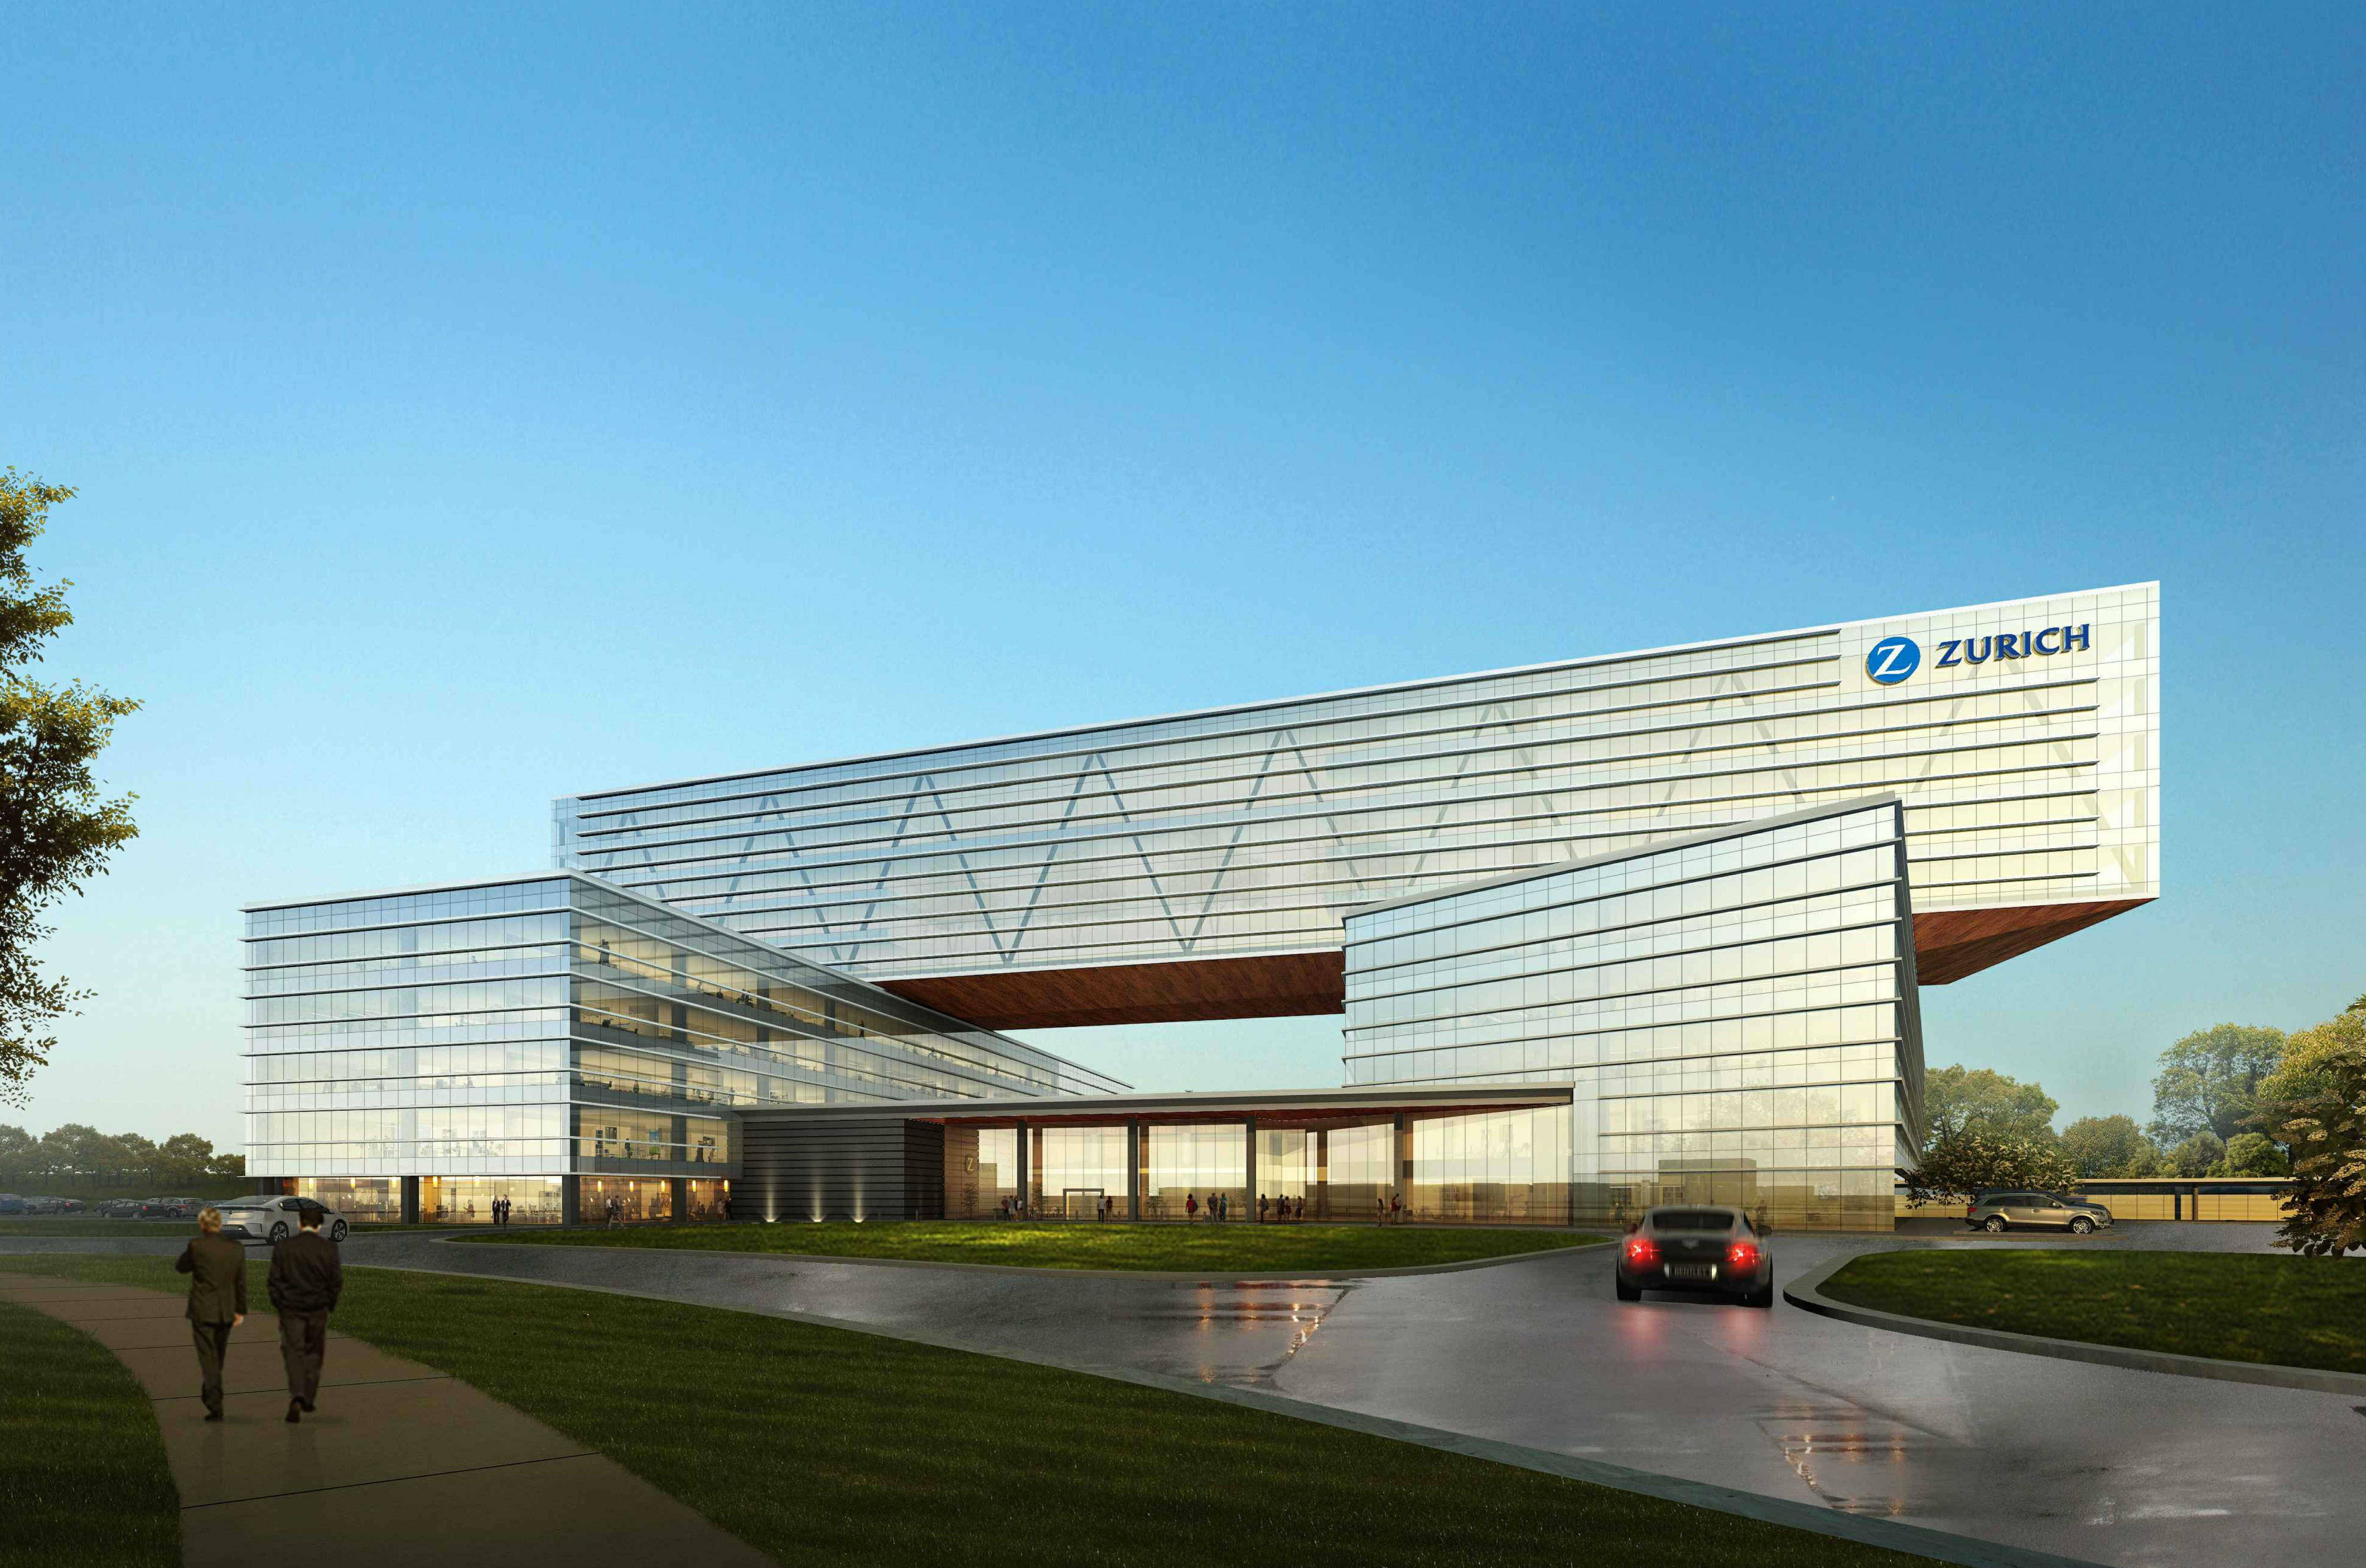 Schaumburg officials on Tuesday gave final approval to the proposed new Zurich American Insurance headquarters on the Motorola Solutions campus. The planned 750,000-square-foot headquarters will sit at the northwest corner of Meacham Road and the Jane Addams Memorial Tollway.